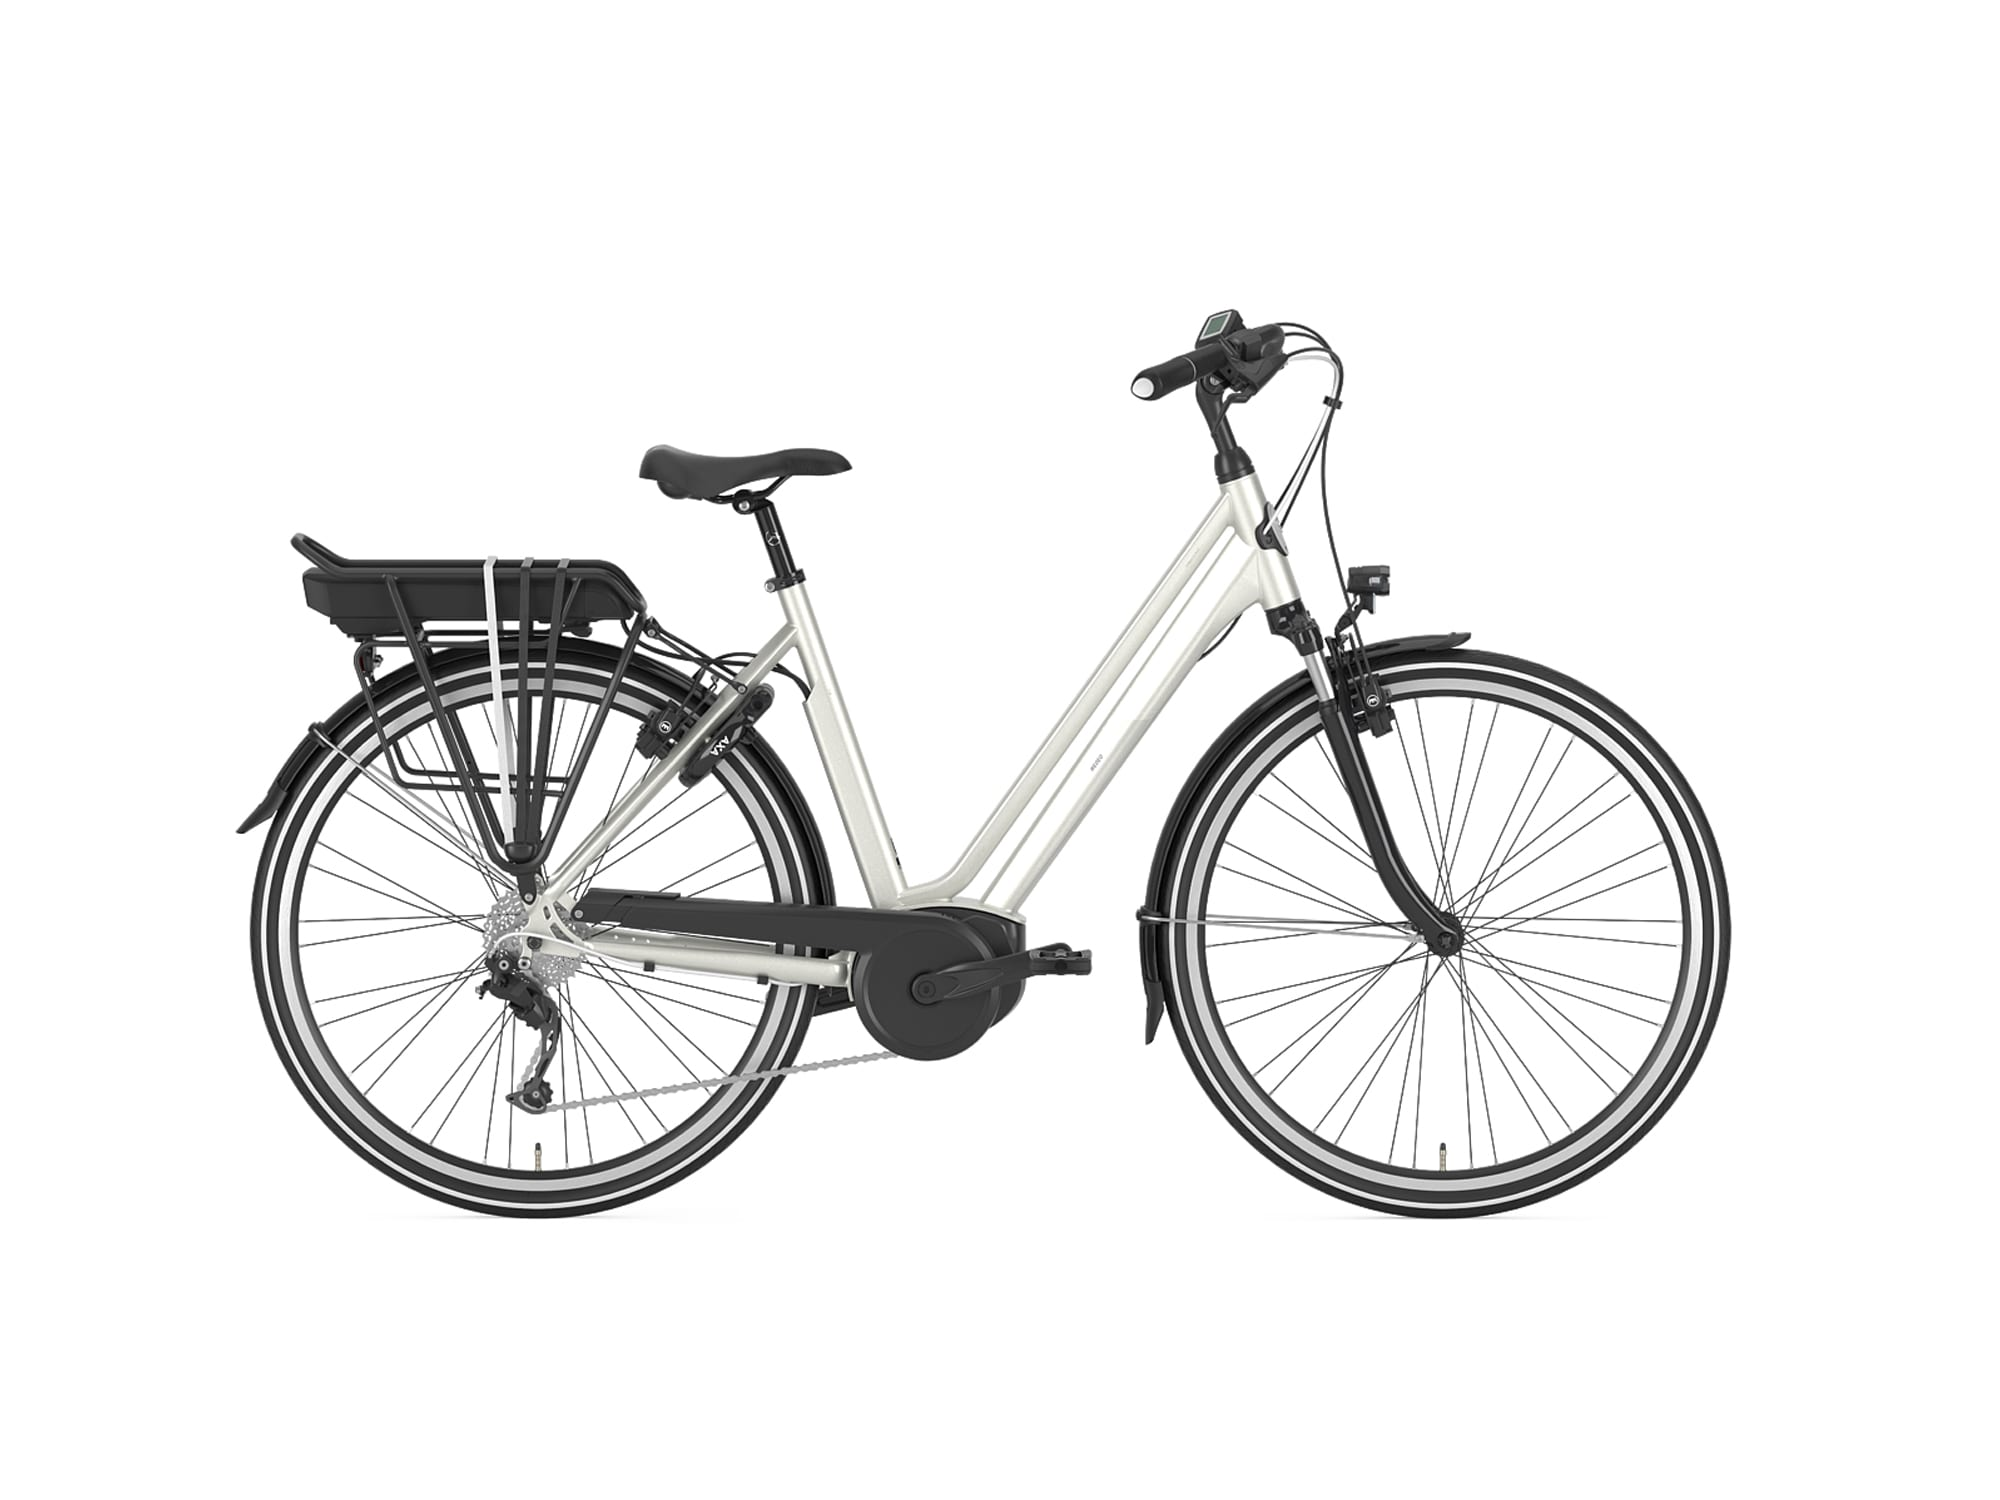 Gazelle Medeo T9 Review